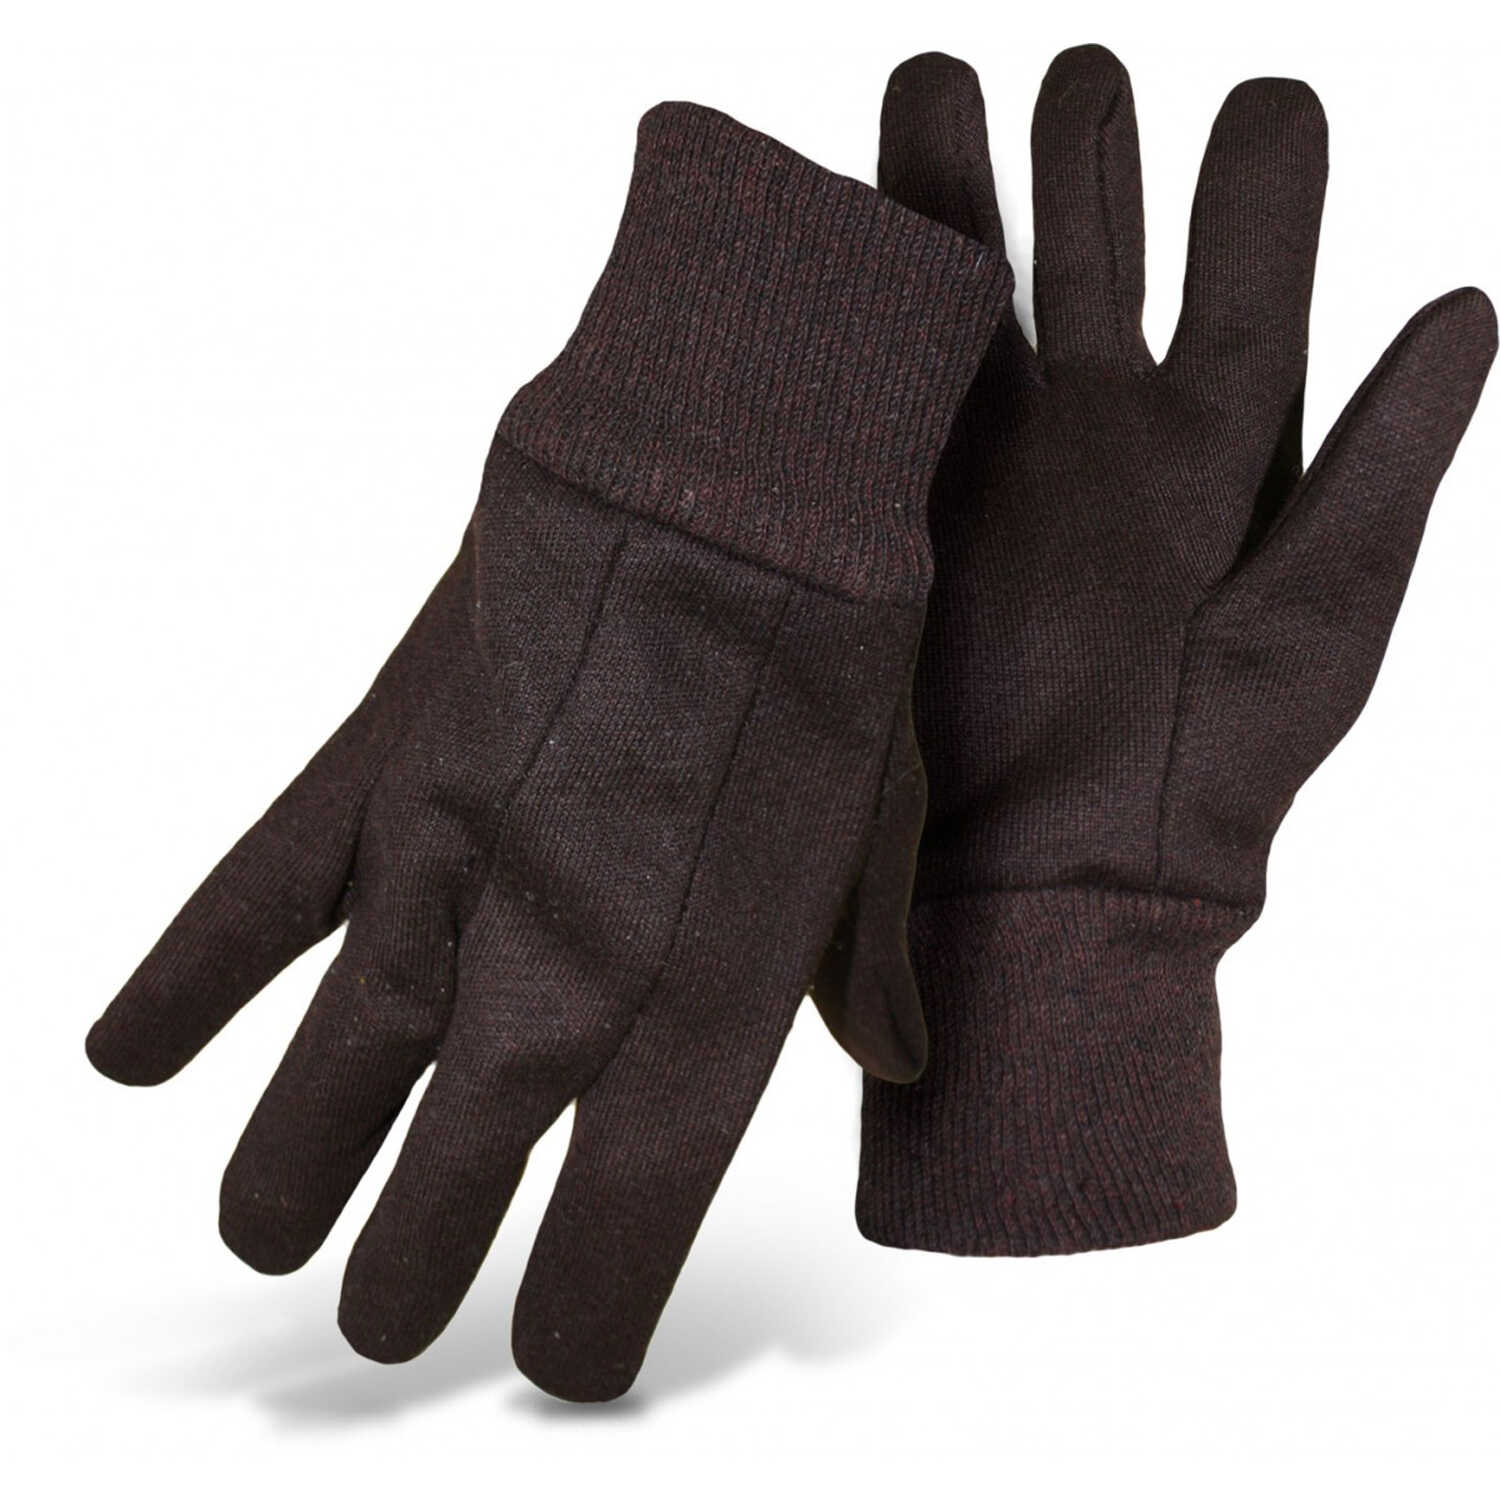 Boss  Men's  Indoor/Outdoor  Cotton/Polyester  Jersey  Work Gloves  Brown  L